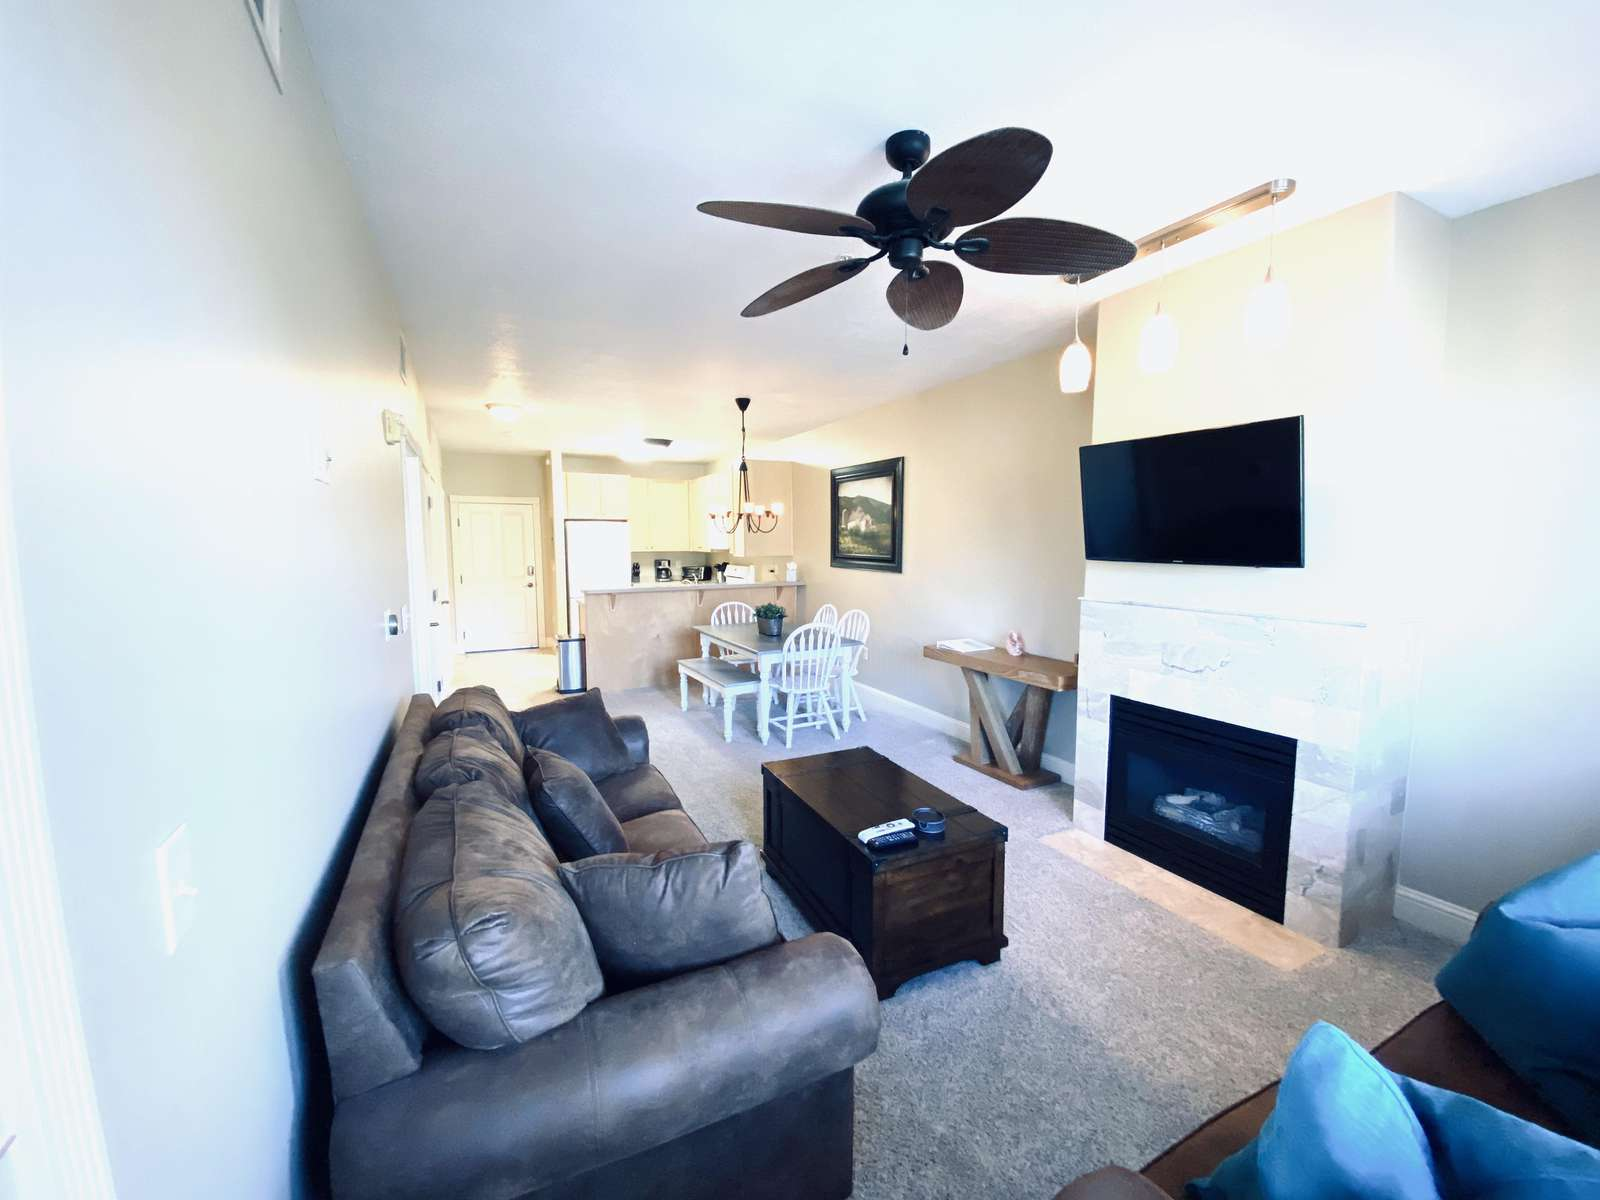 Gas fireplace and flat screen TV